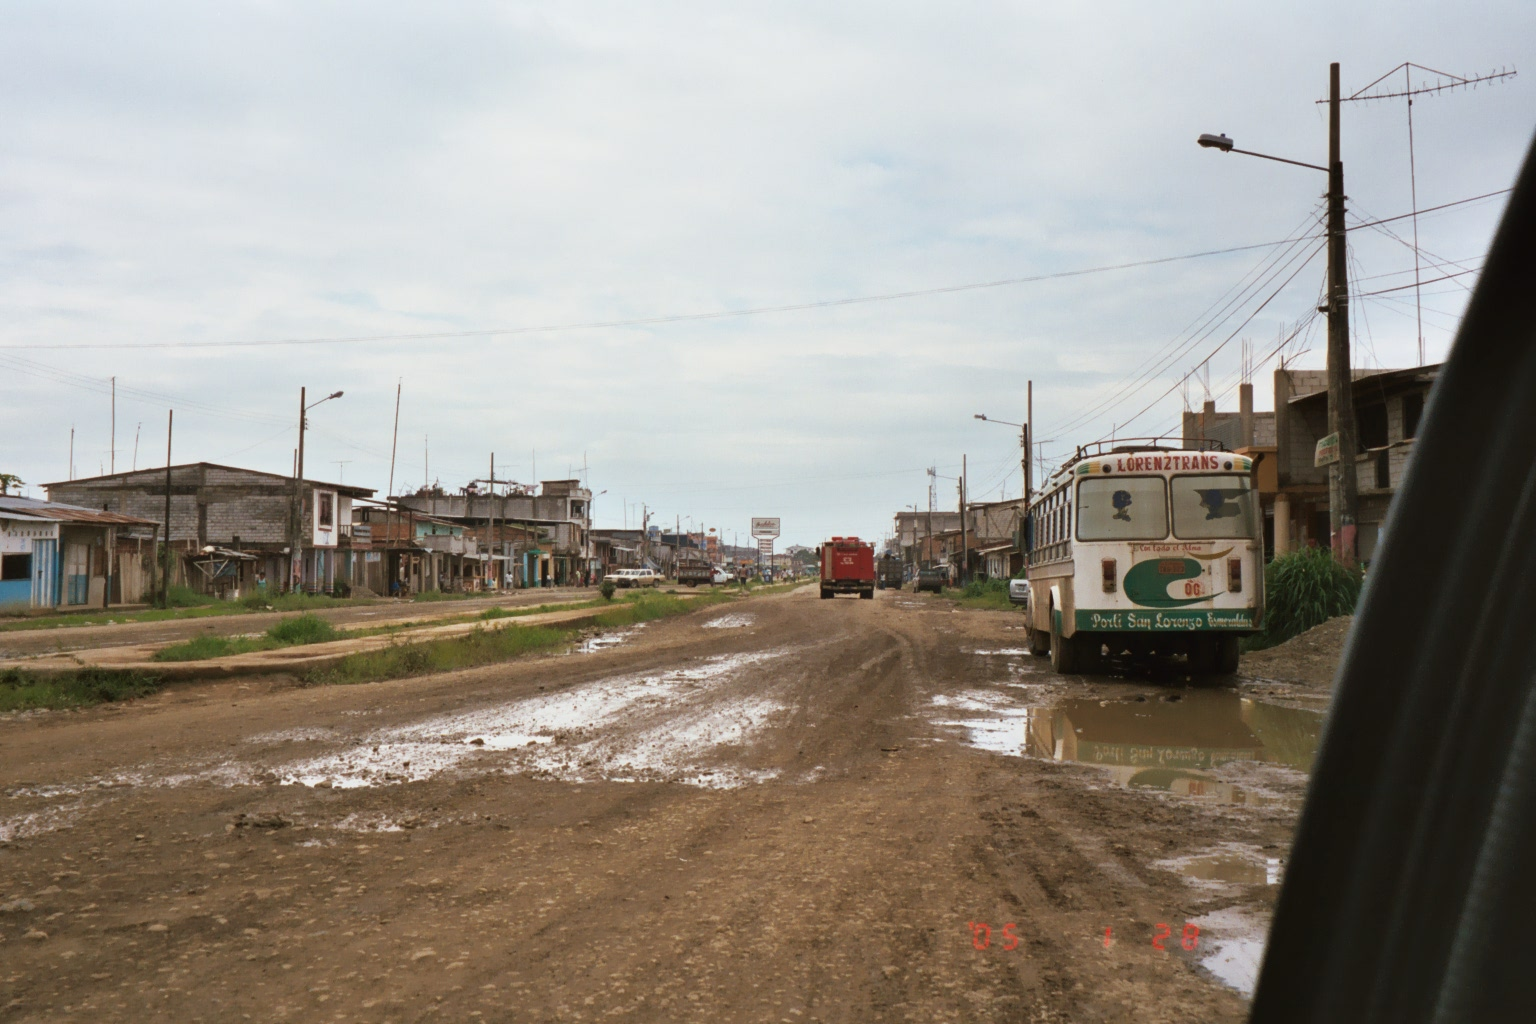 The main road leading to downtown